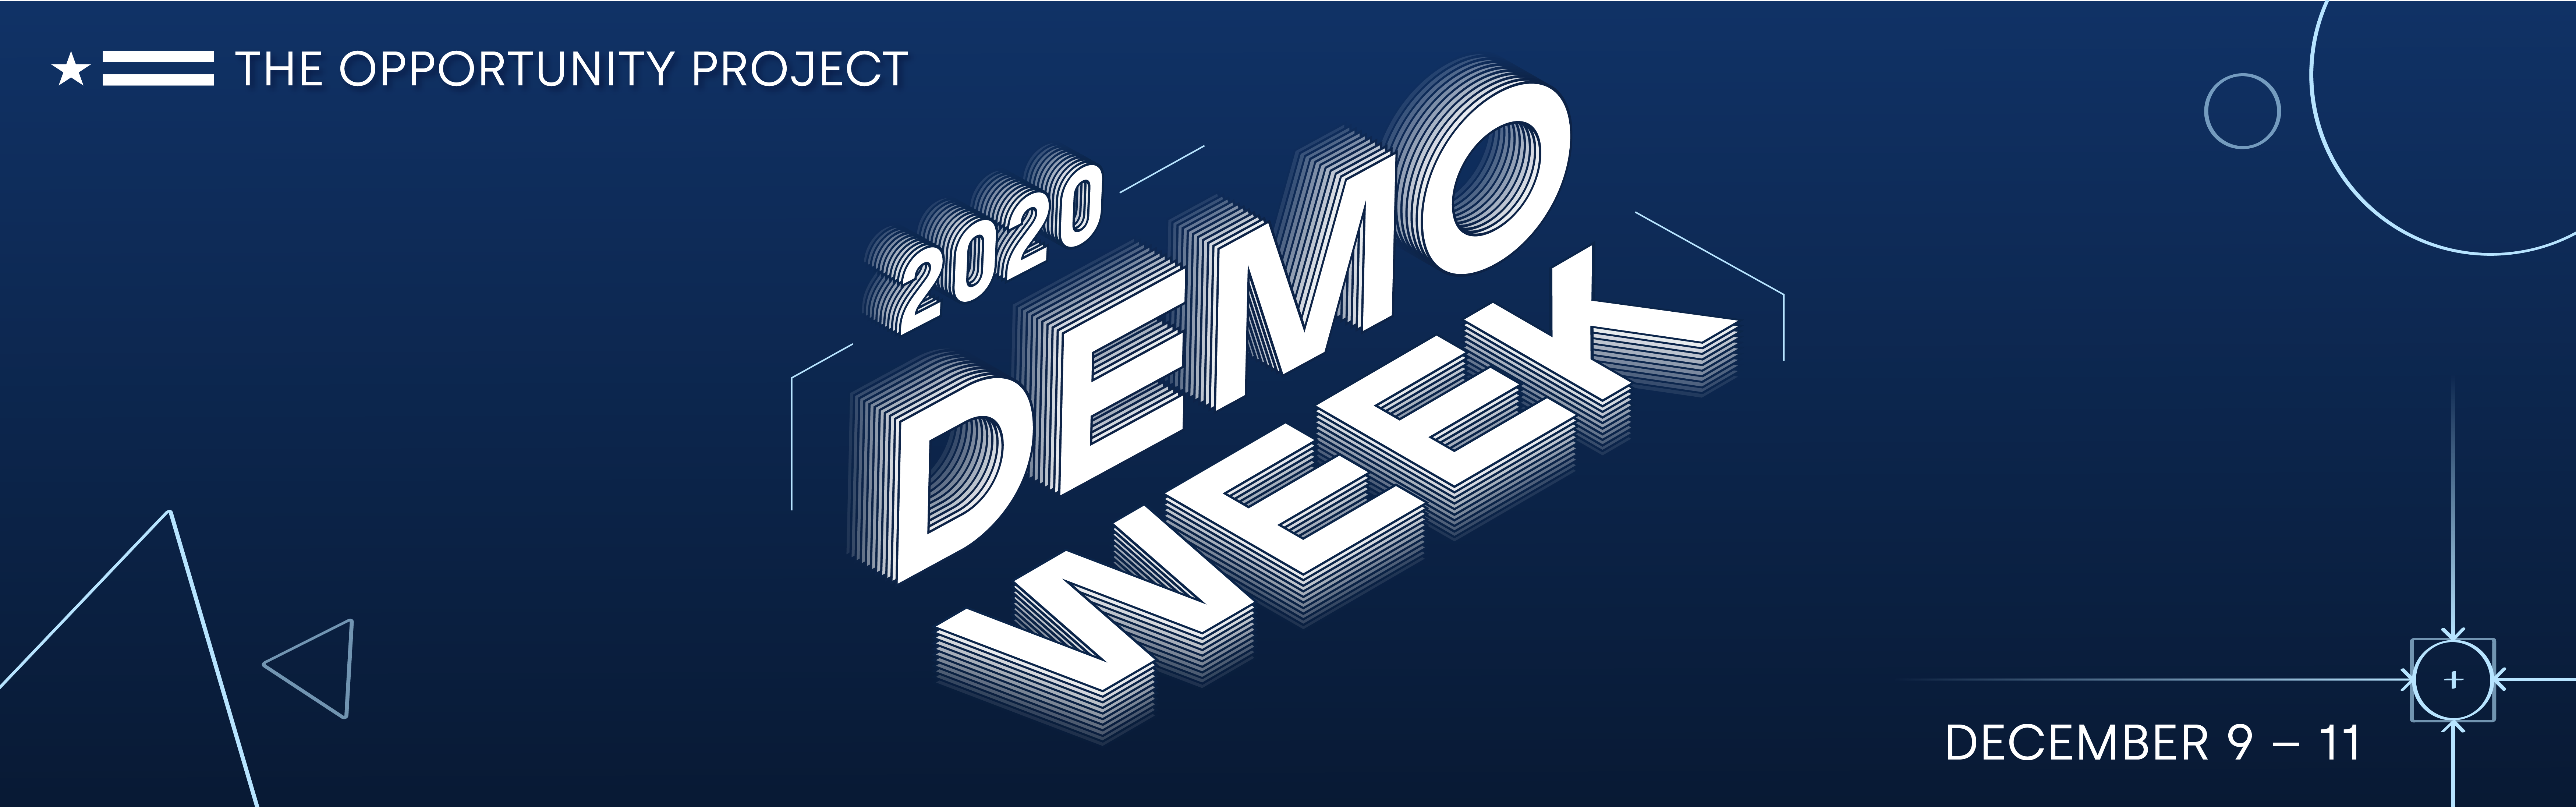 The Opportunity Project Demo Week 2020